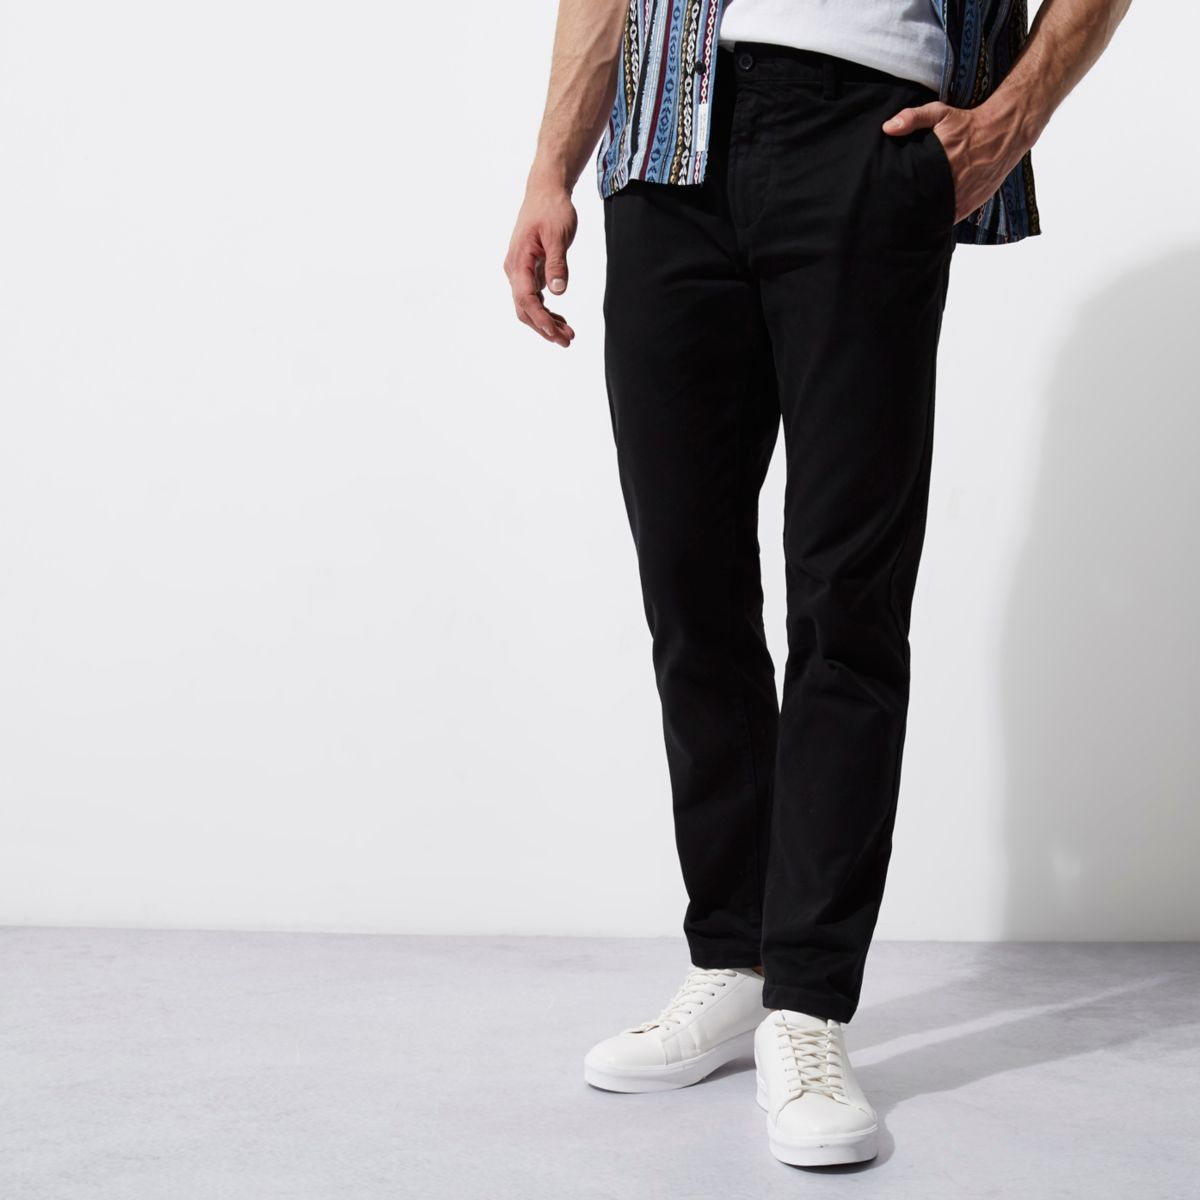 Black casual slim fit chino pants